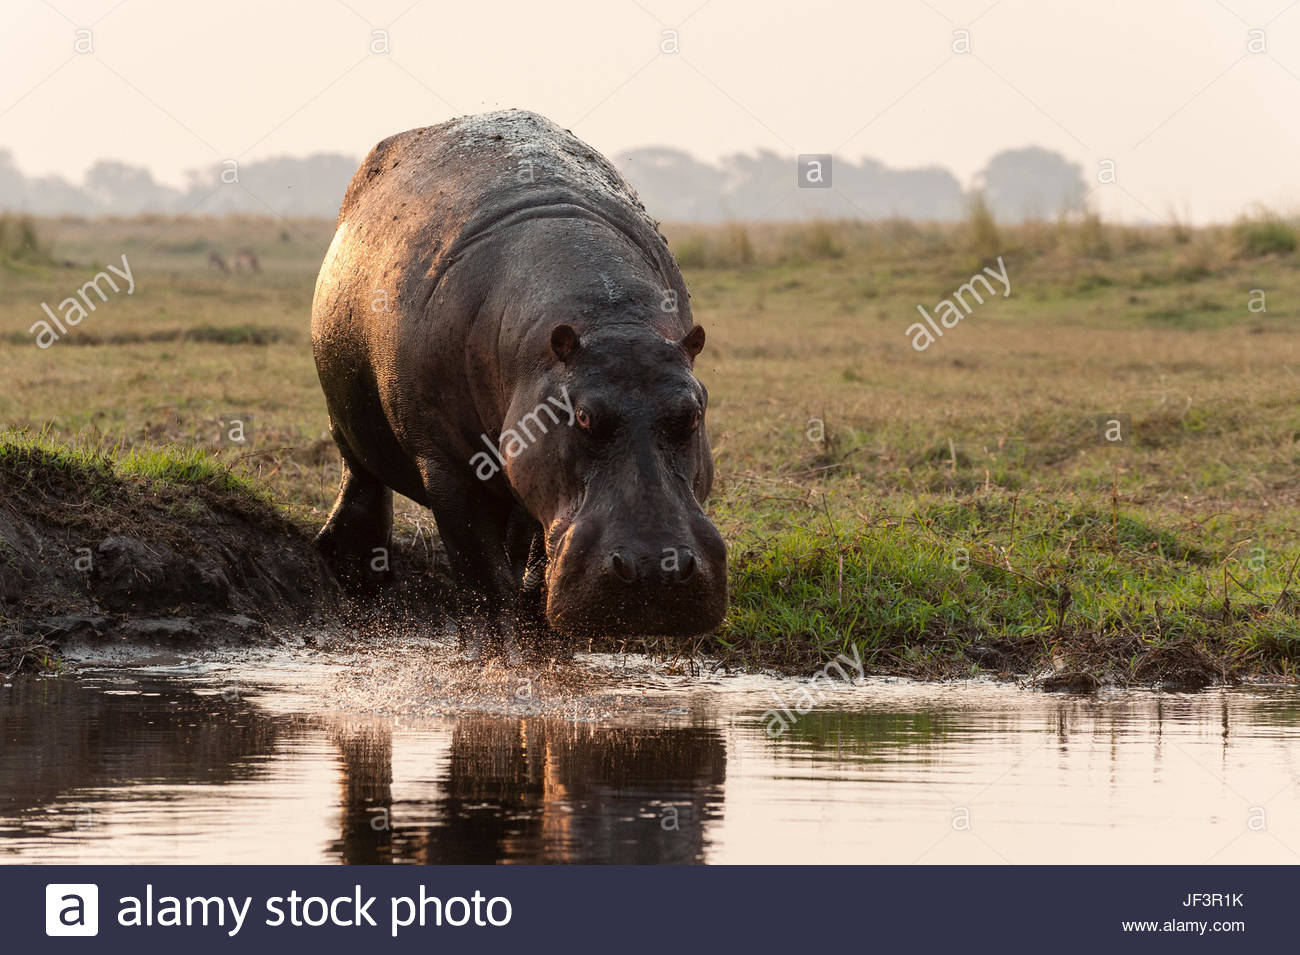 Portrait of a hippopotamus, Hippopotamus amphibius, running into the water from a river bank. - Stock Image